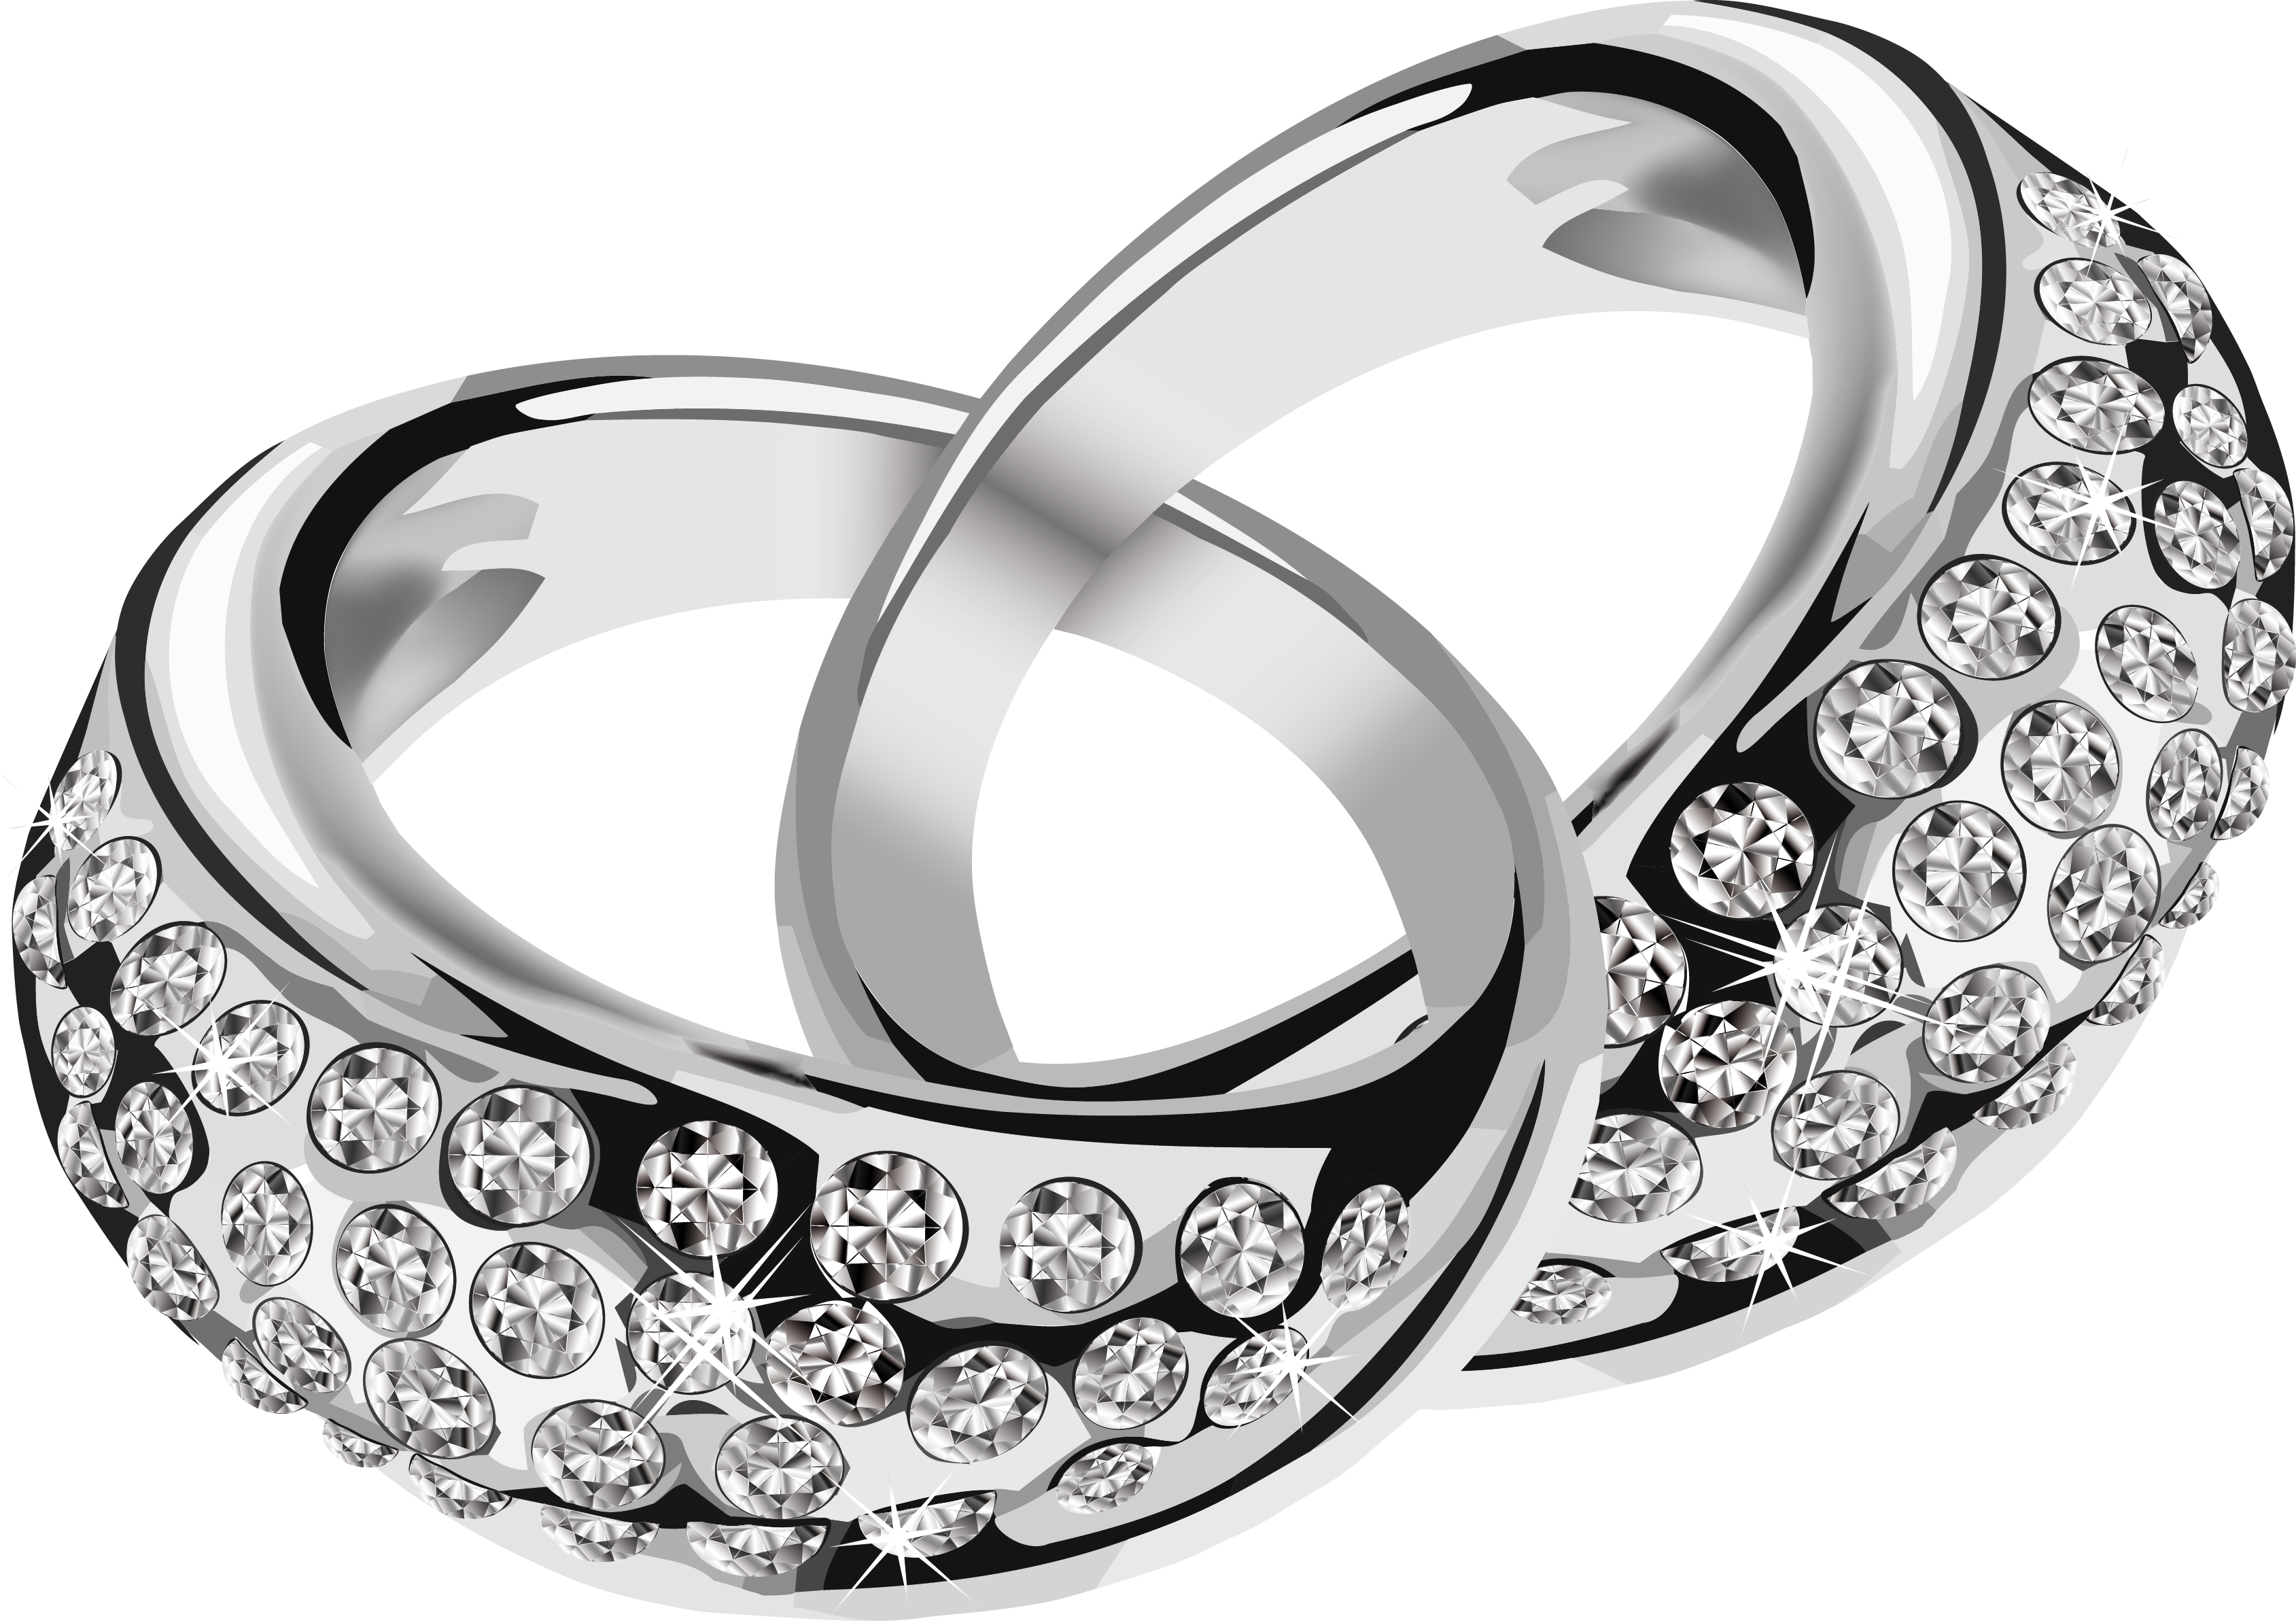 Diamond ring .png. Jewelry png images free